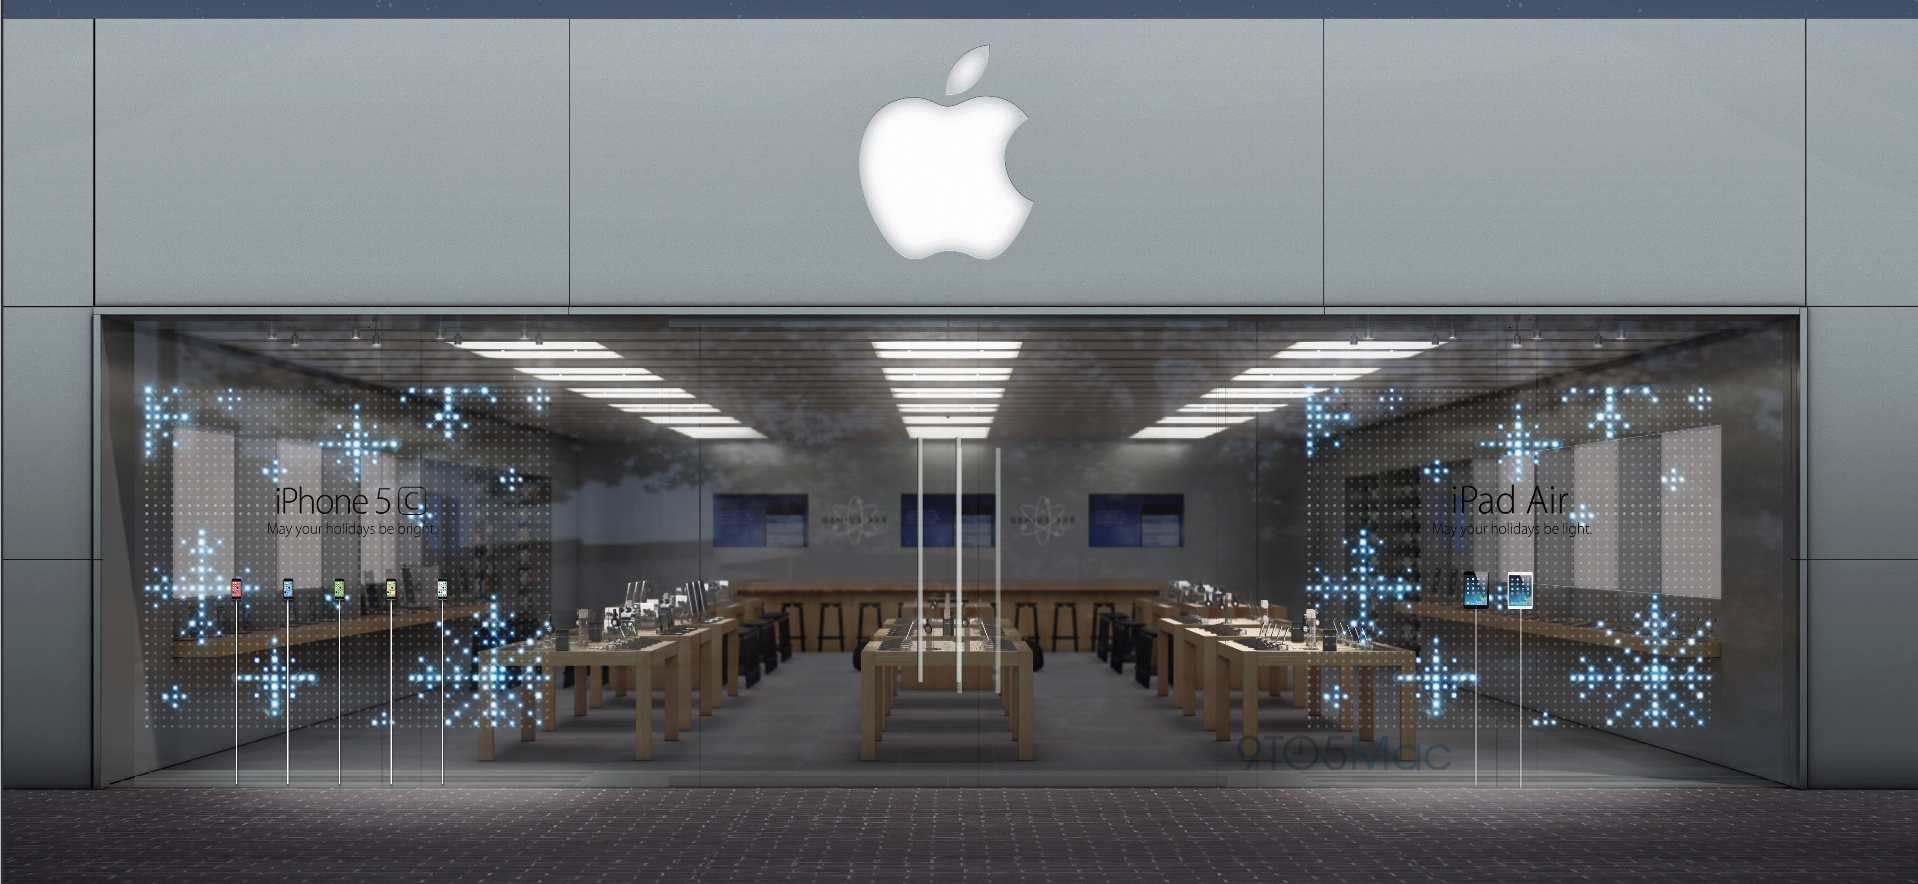 facade of Apple store